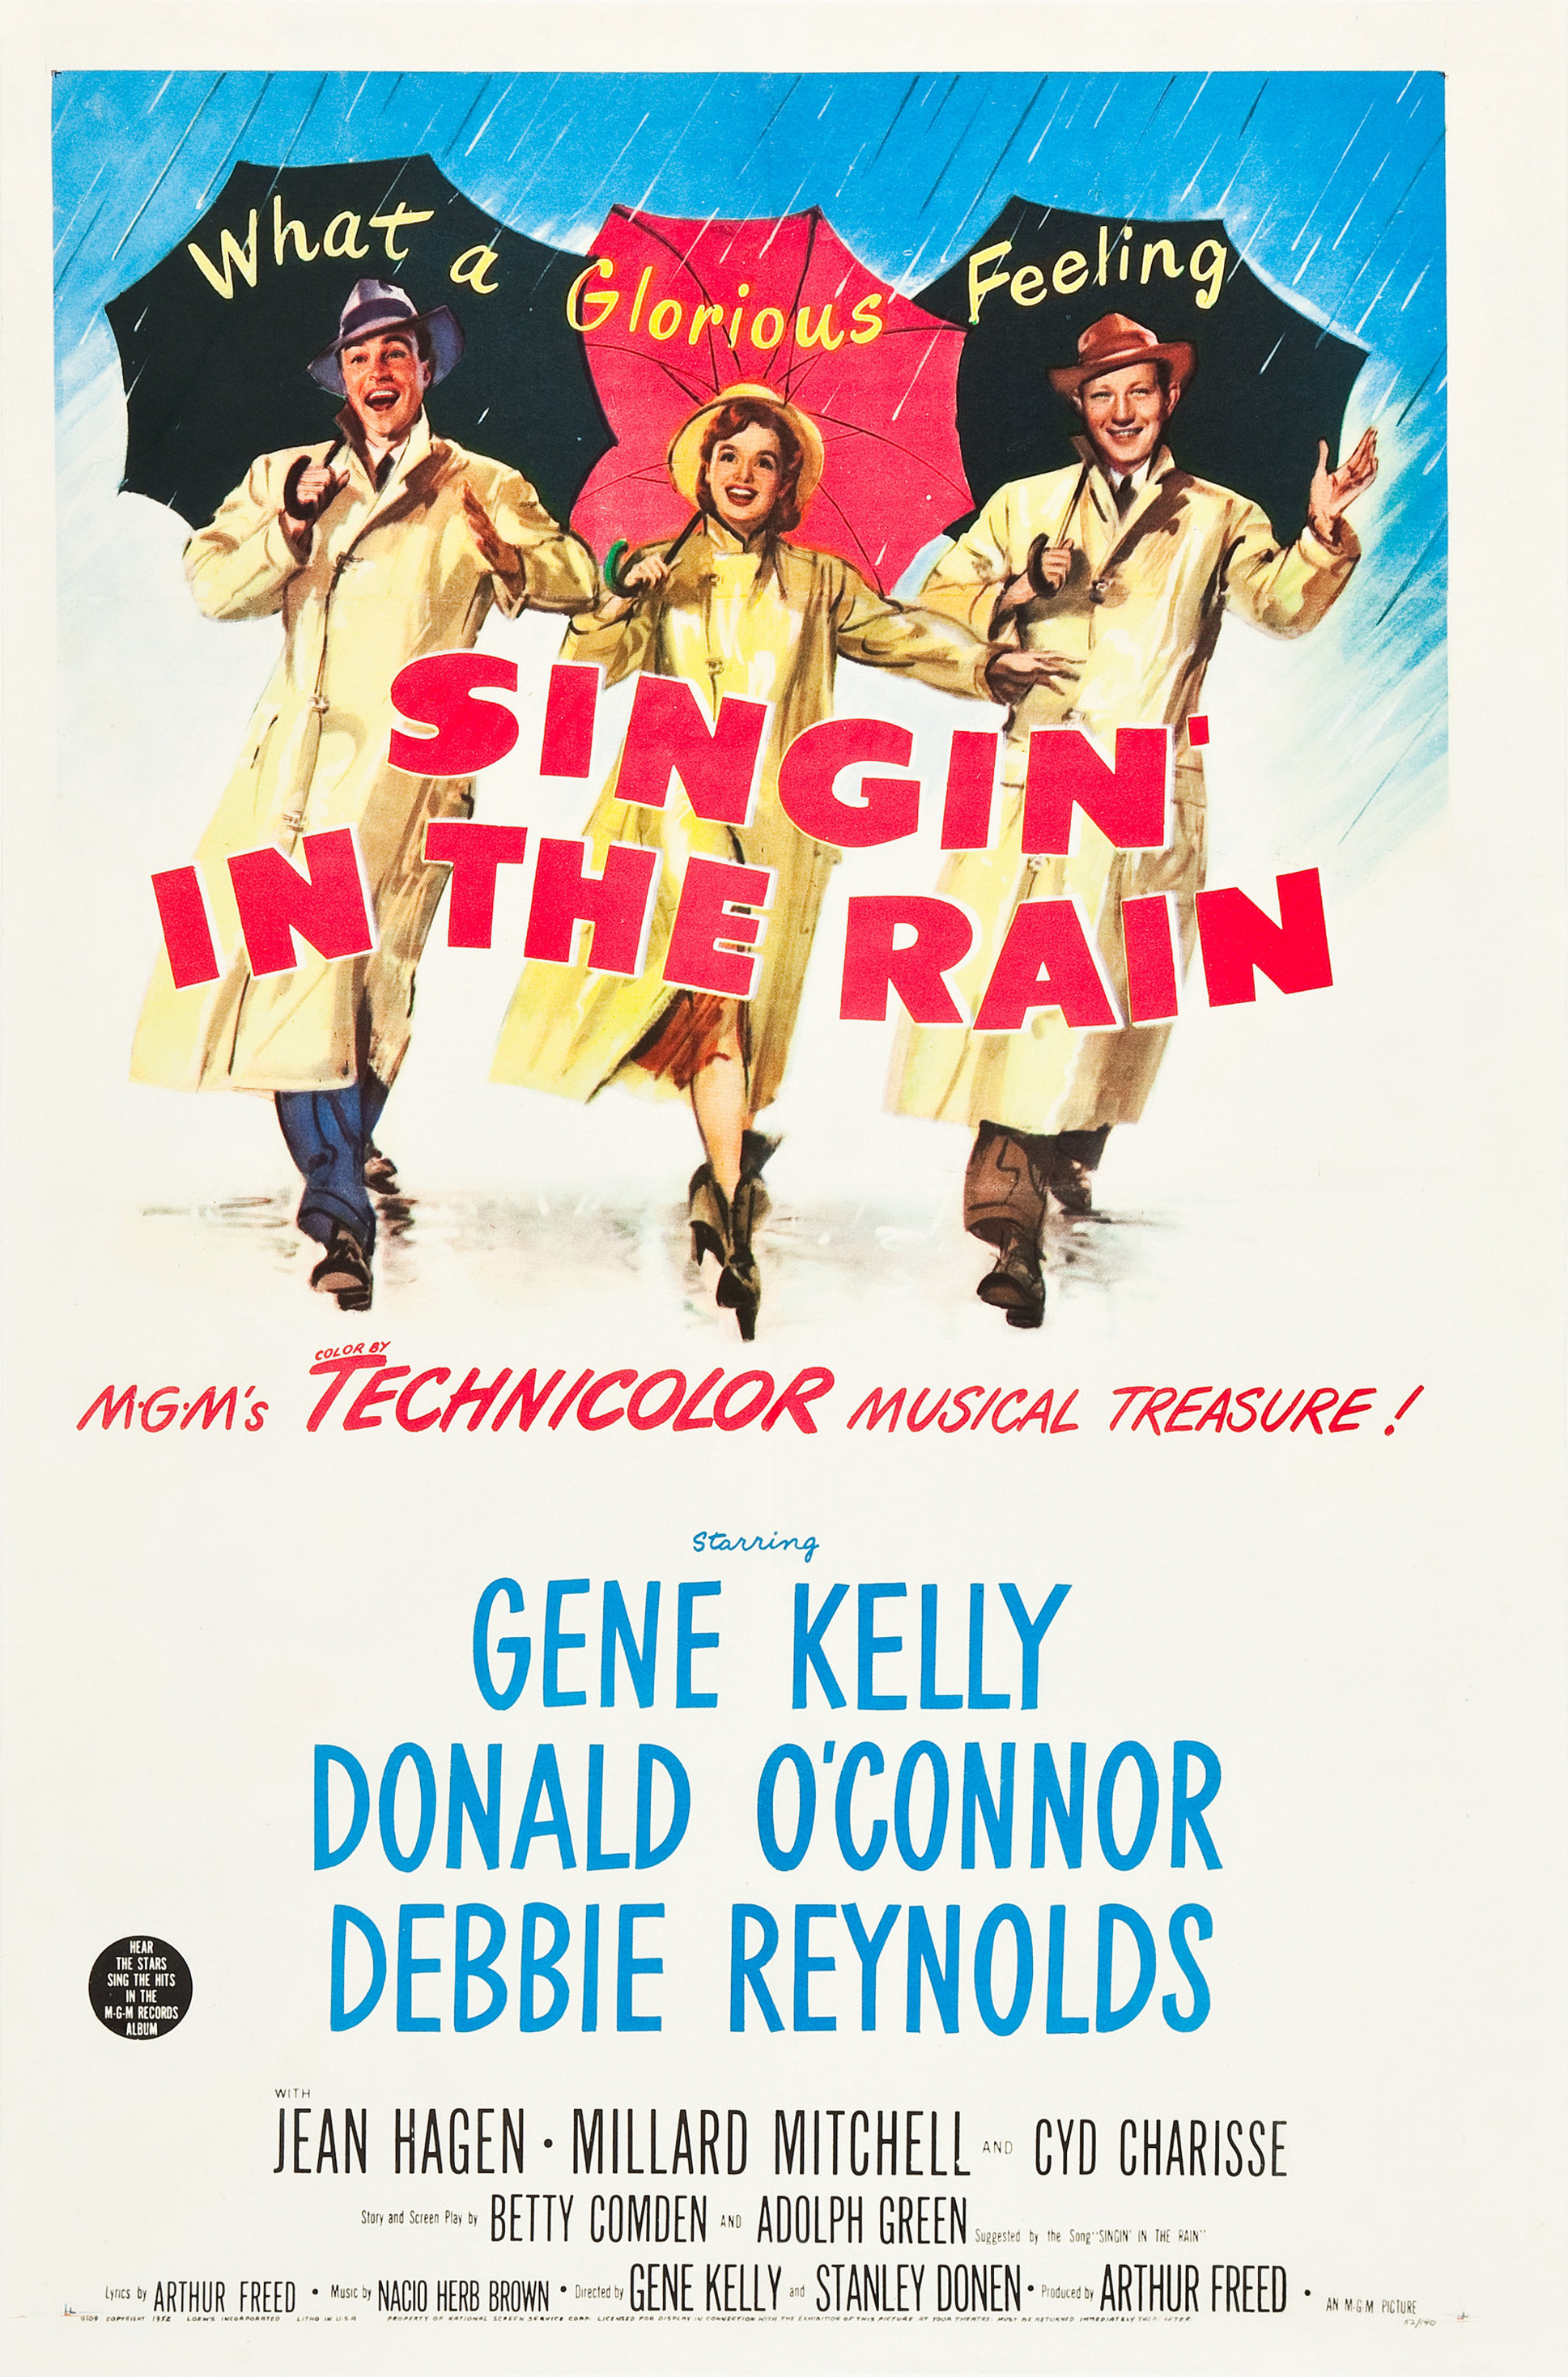 Singin' in the Rain - Wikipedia